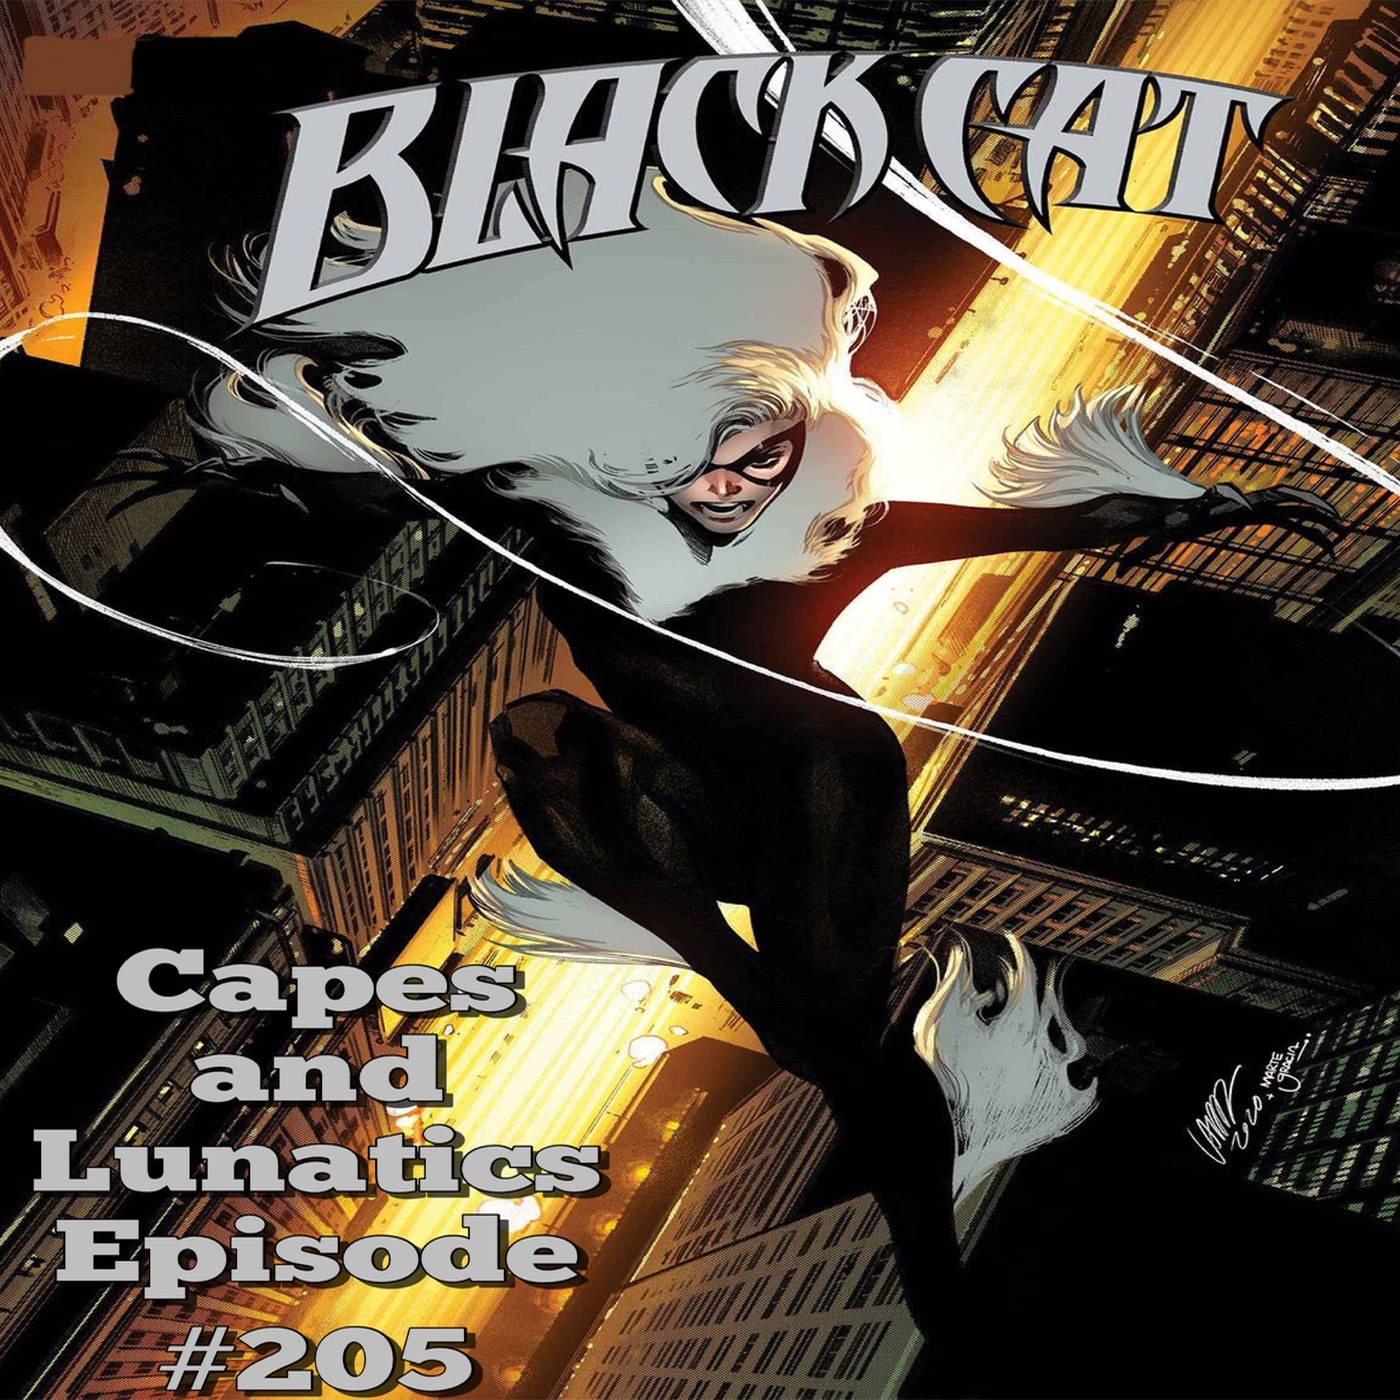 Guardians of the Galaxy #13, Black Cat #5